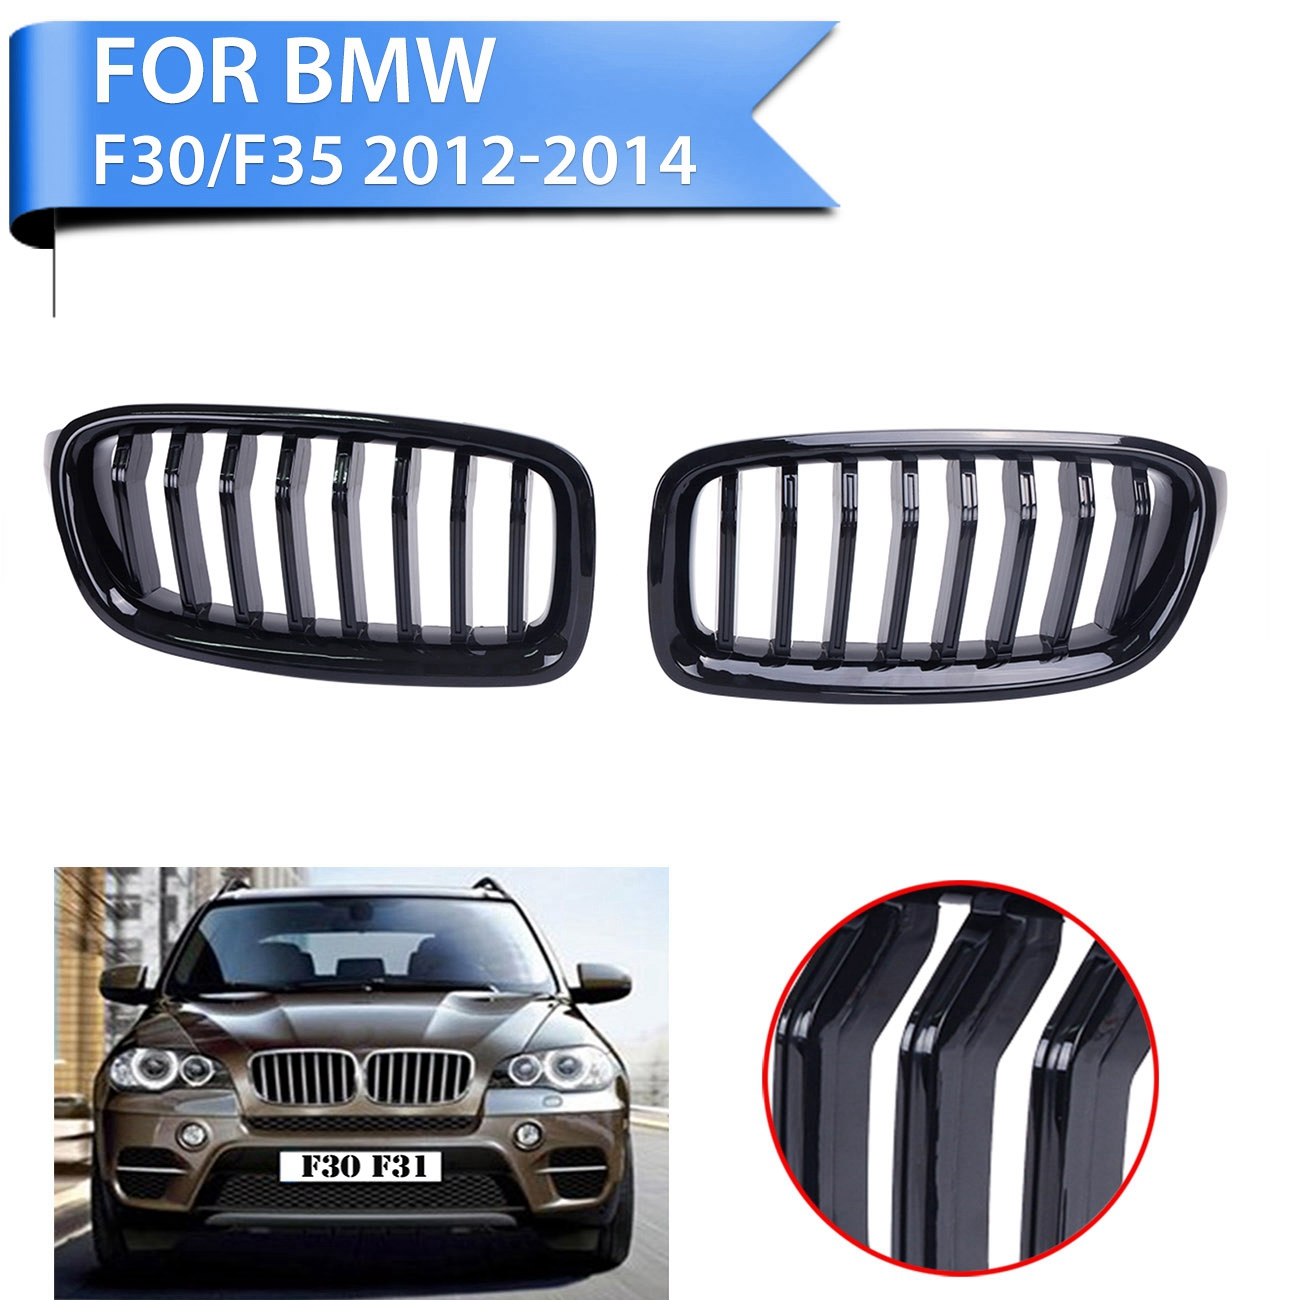 Фотография 2Pcs Front Grille Kidney Grills For For BMW F30 F31 320i 328i 335i 4Door 2010 2011 2012 2013 2014 Glossy Black WISENGEAR P188-T